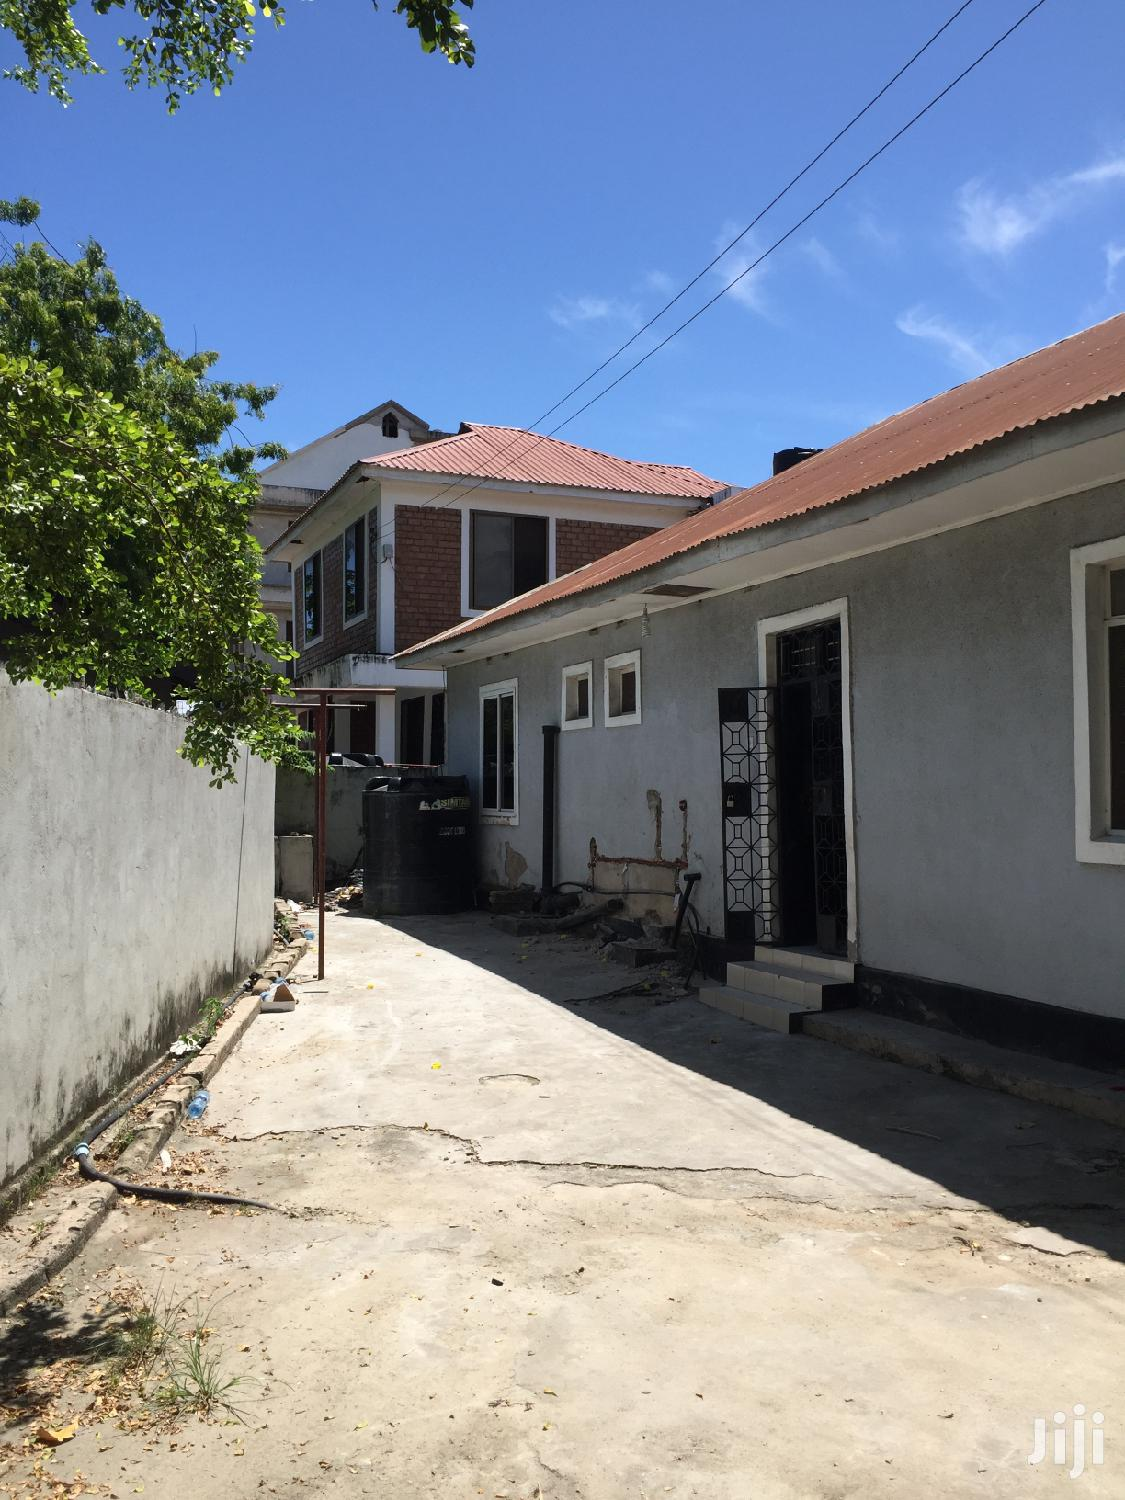 House For Sale Located At Mwananyamala. 2 Houses In One Compound | Houses & Apartments For Sale for sale in Kinondoni, Dar es Salaam, Tanzania